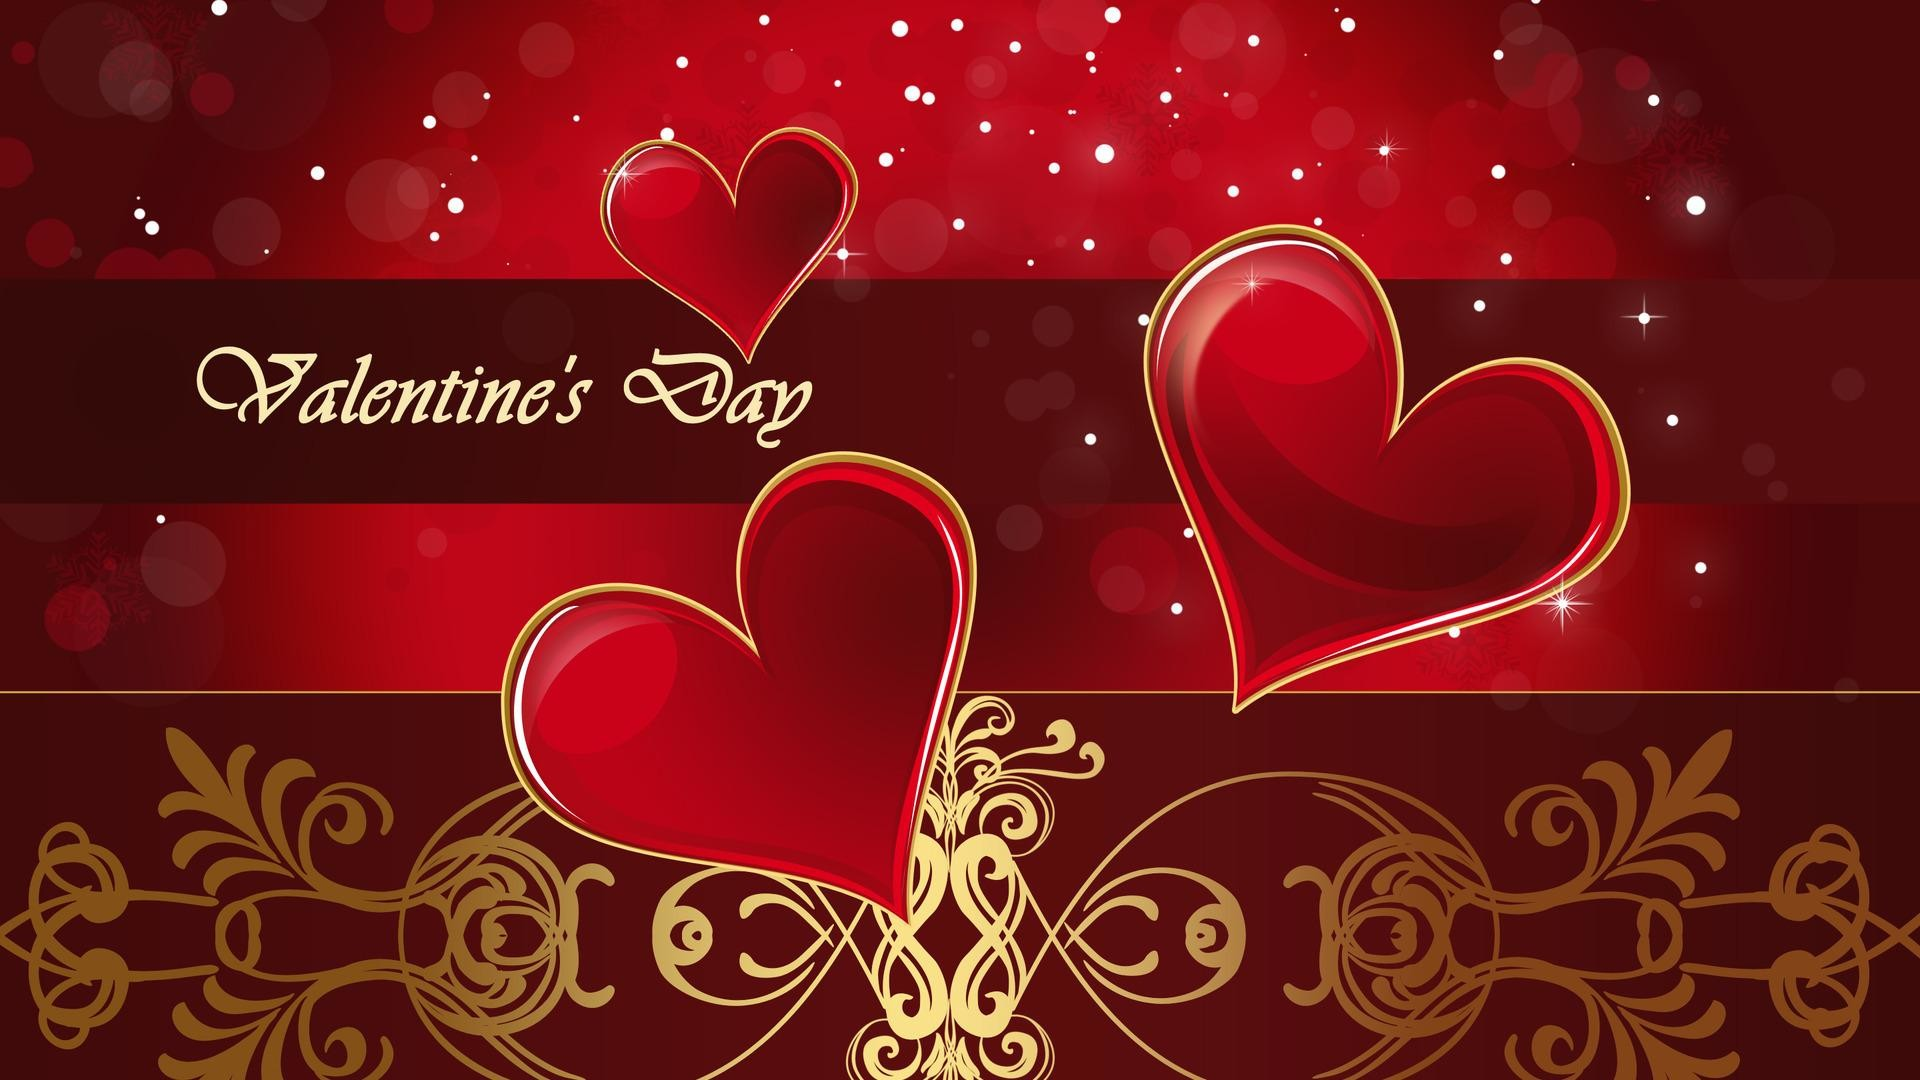 1920x1080 valentines-day-hd-wallpapers-love